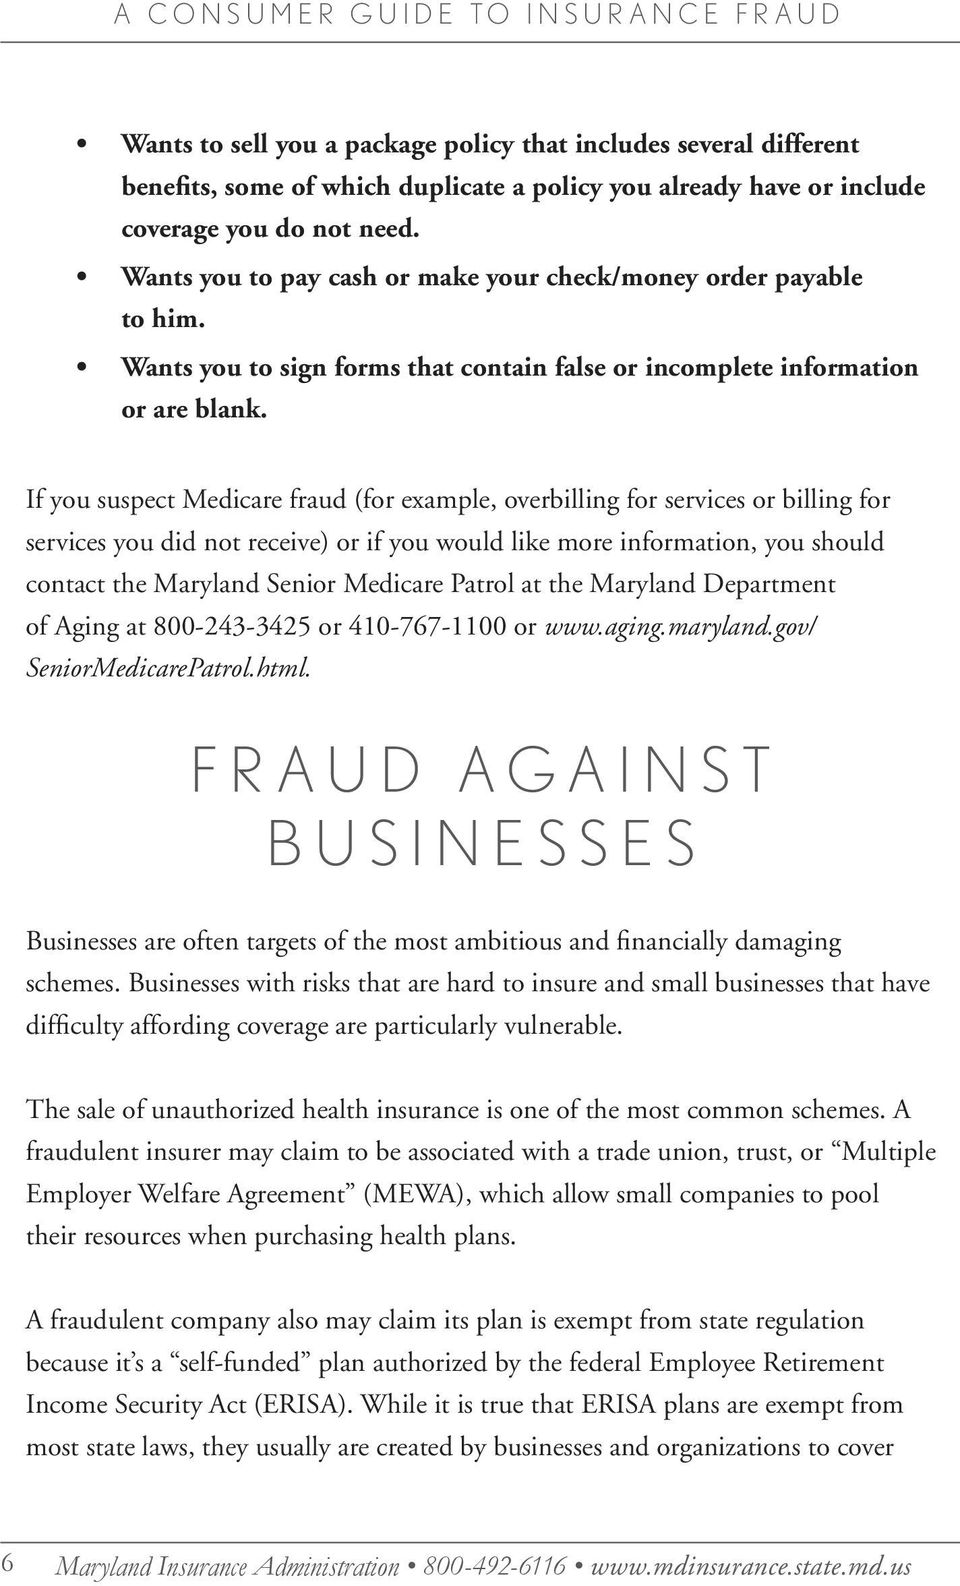 If you suspect Medicare fraud (for example, overbilling for services or billing for services you did not receive) or if you would like more information, you should contact the Maryland Senior